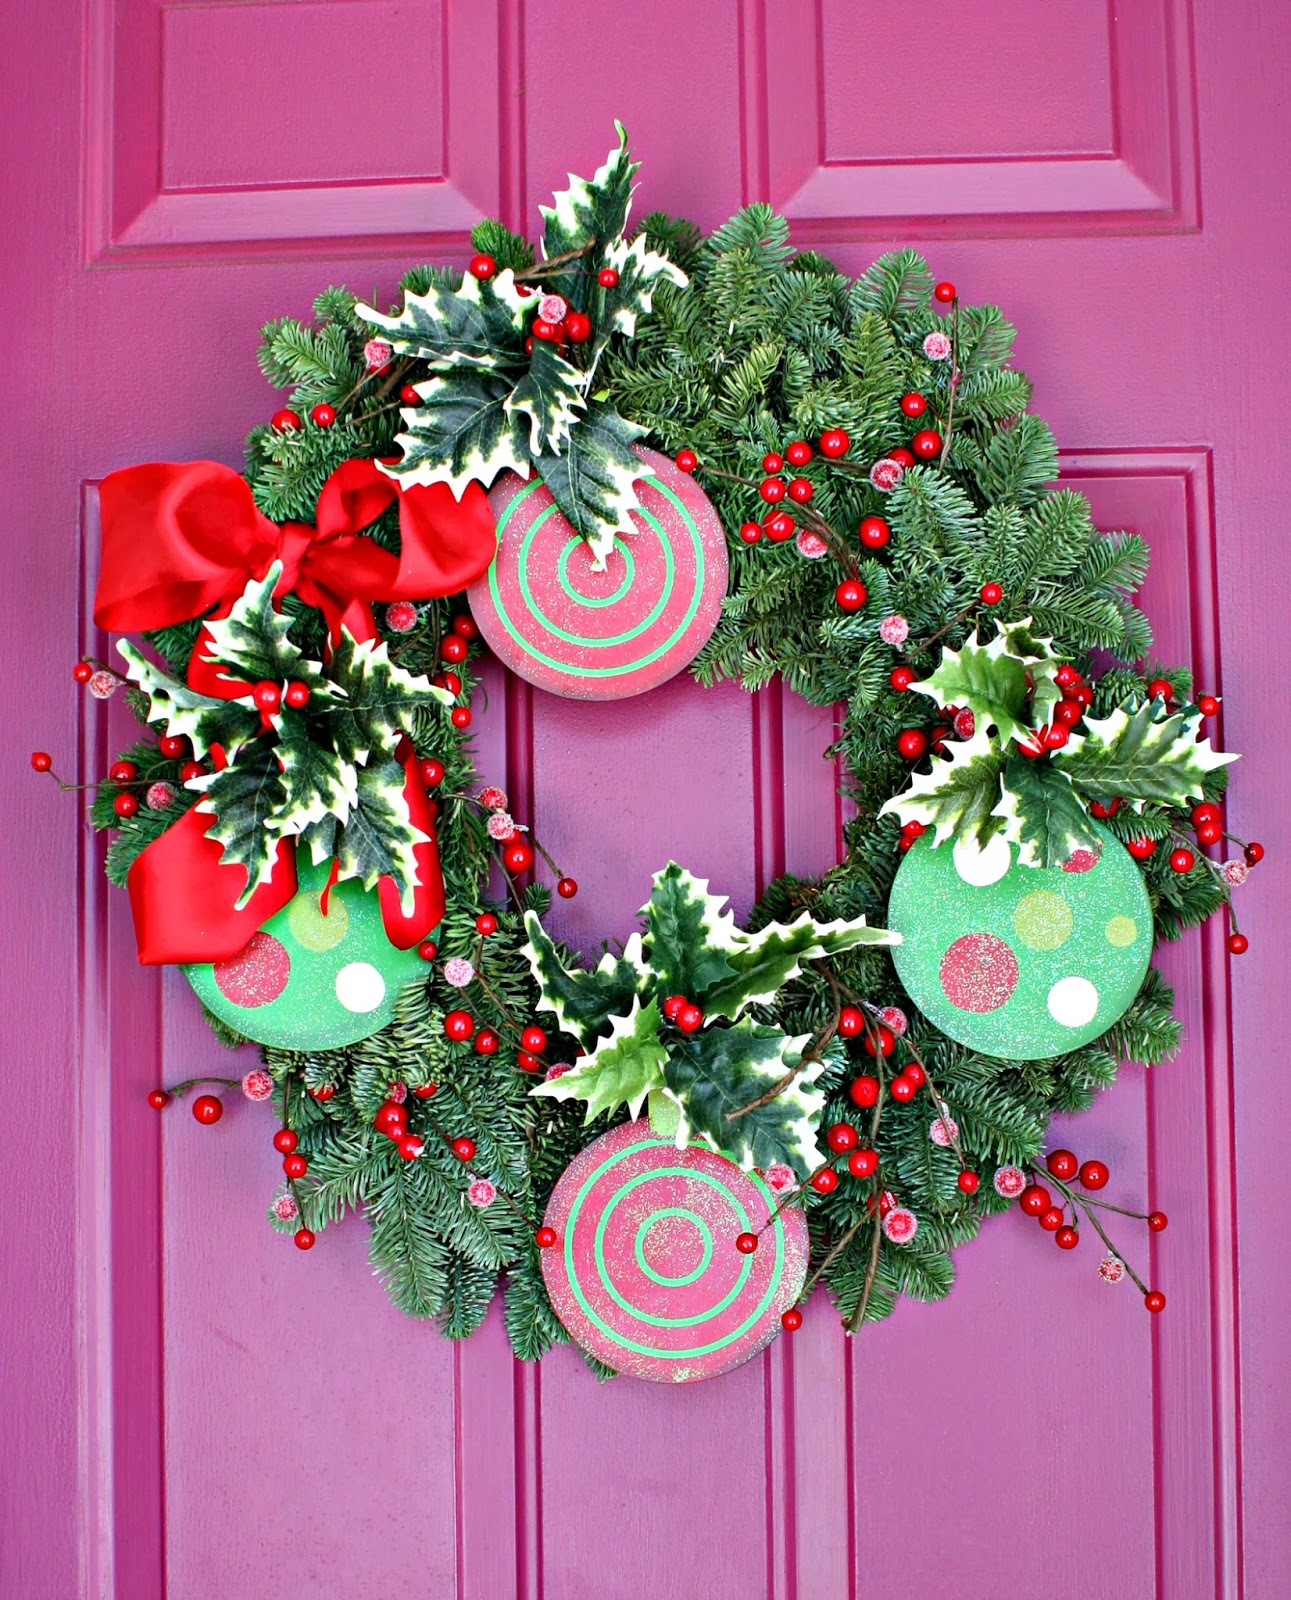 Christmas Decorations 2013: MarvinsDaughters: Christmas Decor Paula's Home 2013